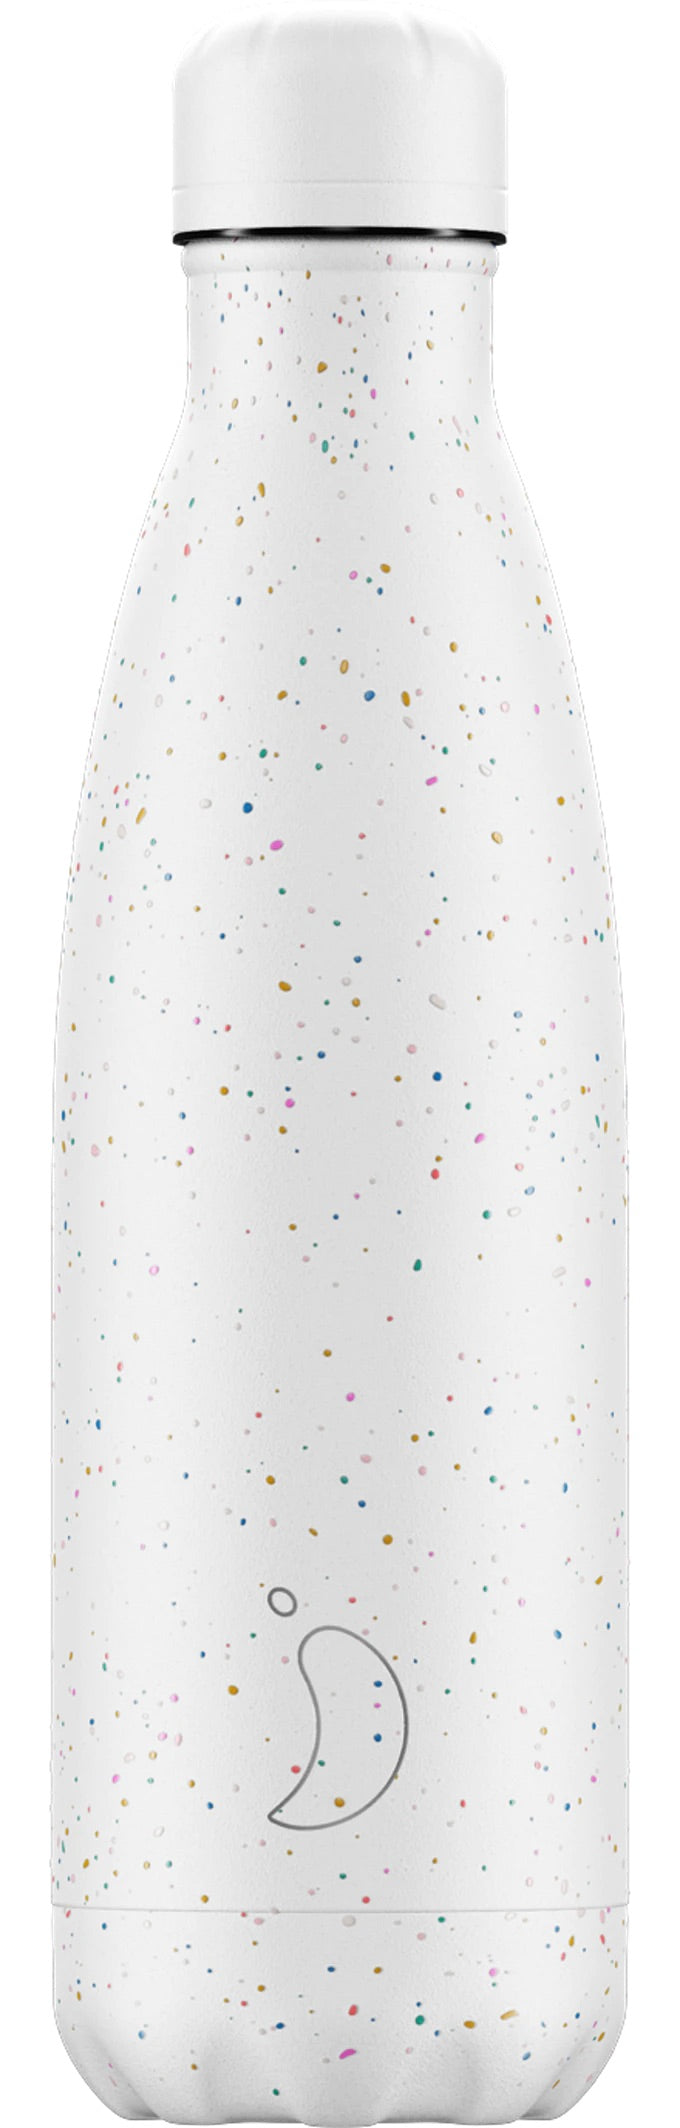 Speckle edition white chilly bottle - 500ml